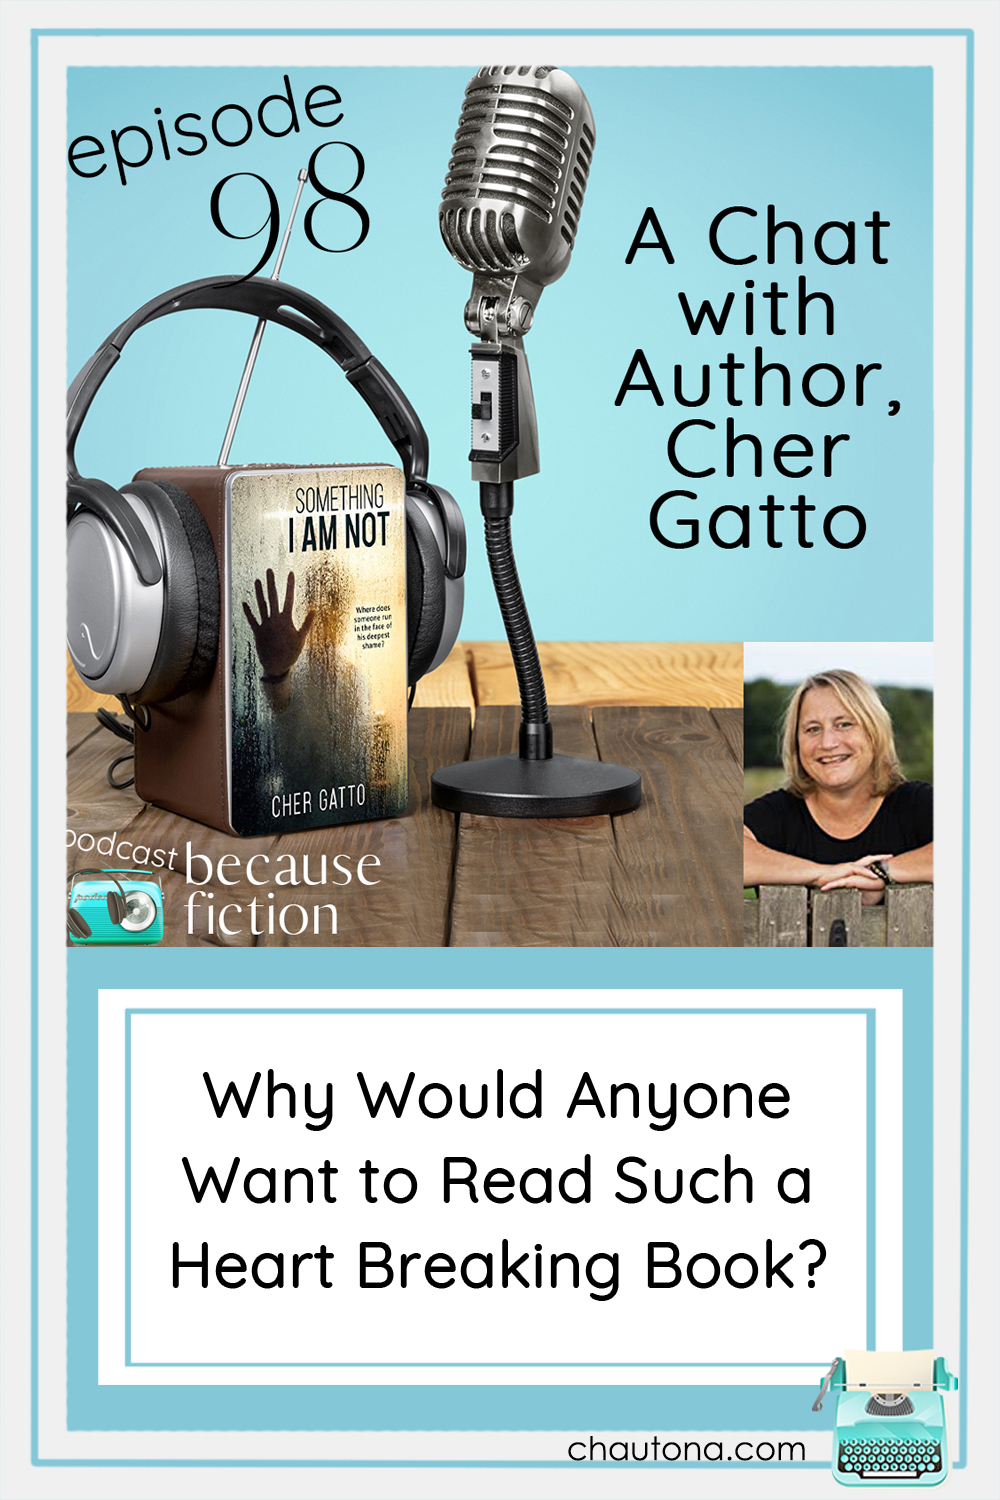 Discover what Cher Gatto's book deals with difficult topics, and she tells us about the real events that led her to write the difficult story. via @chautonahavig